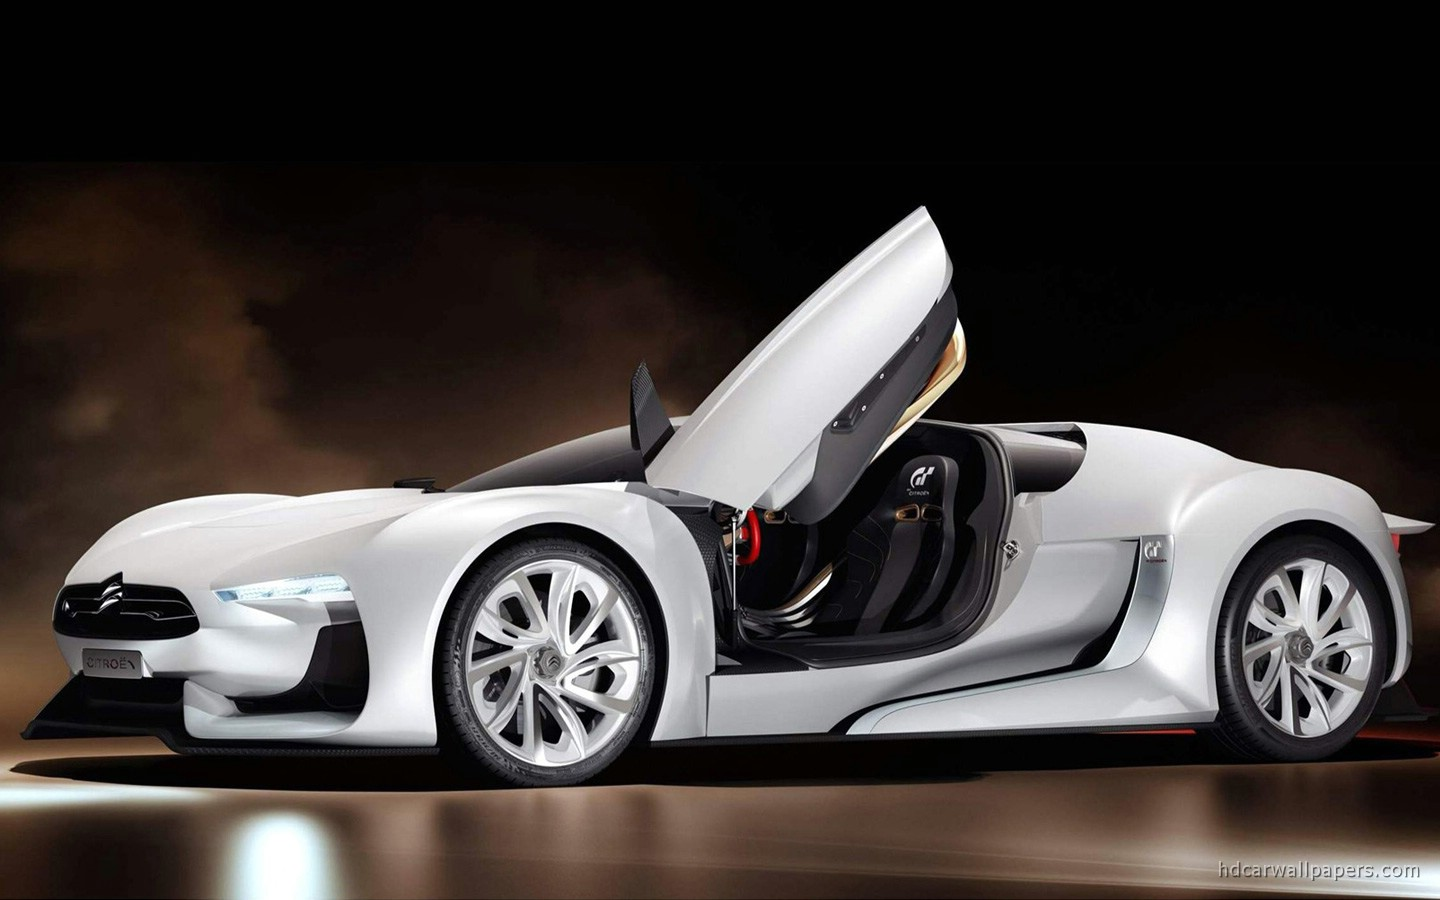 Citroen Supercar Concept Wallpaper | HD Car Wallpapers